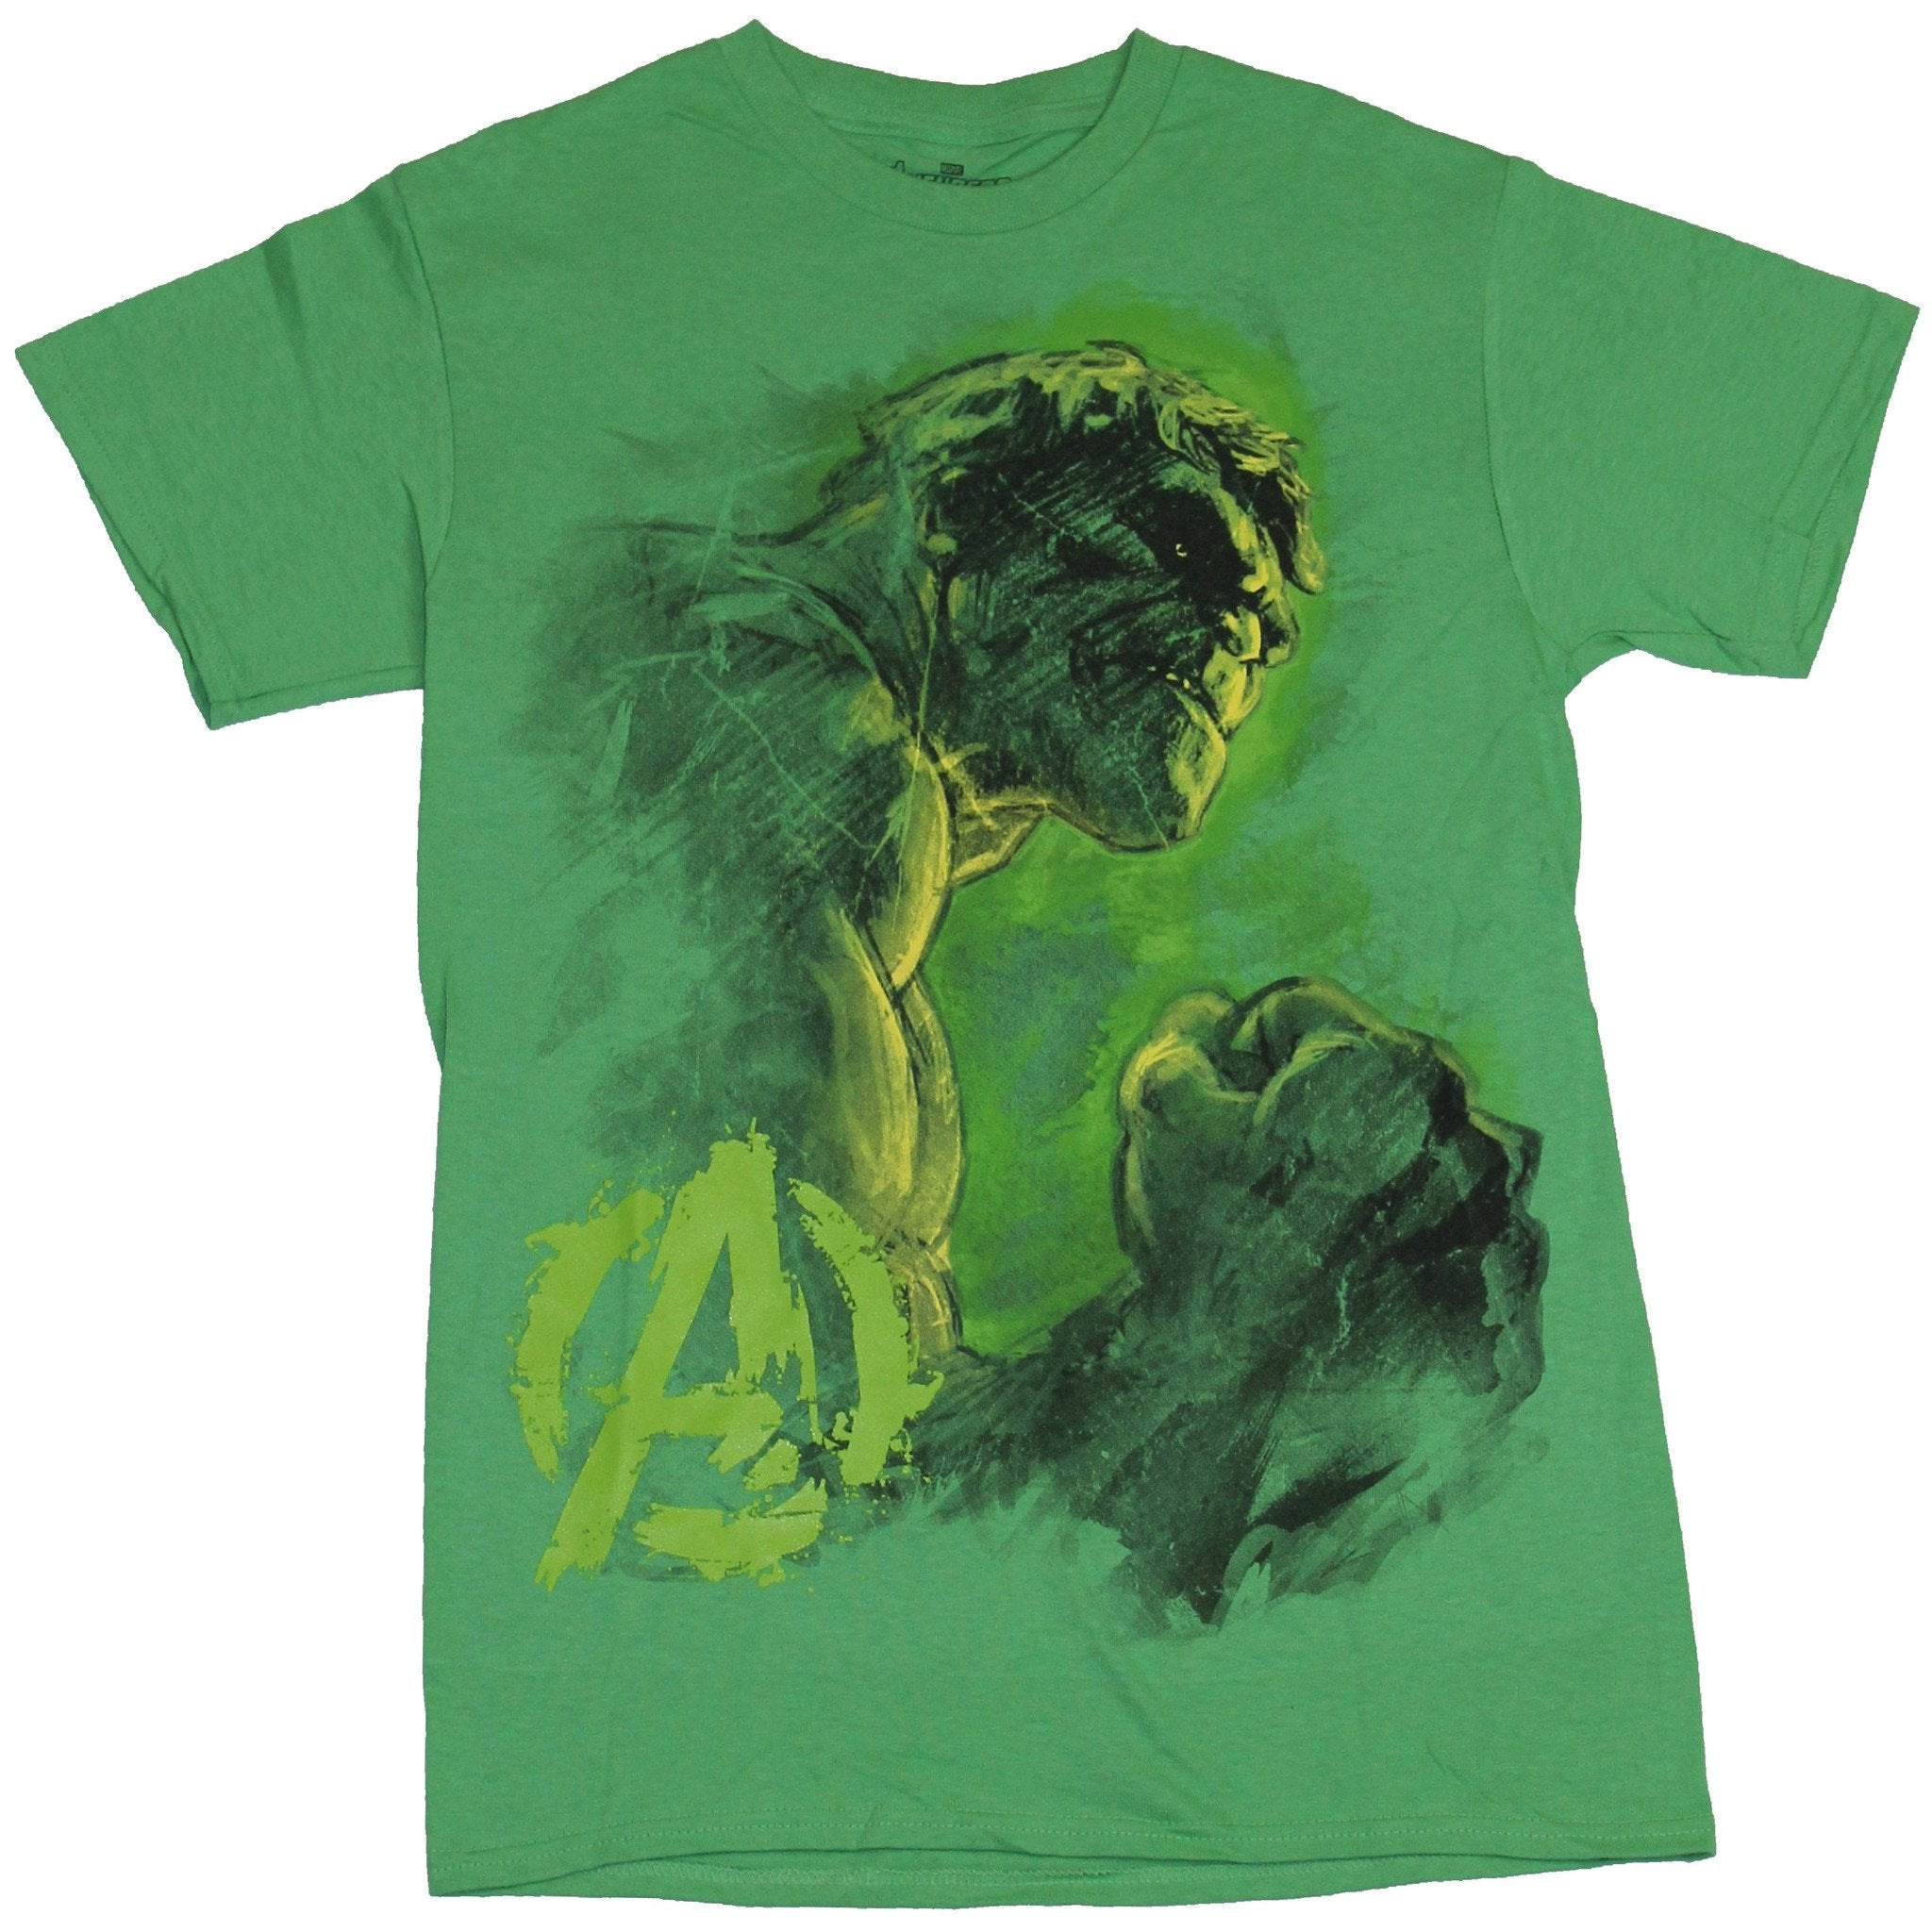 Hulk (Marvel Comics) Mens T-Shirt - Incredible Sketchy Big Fist Hulk Image